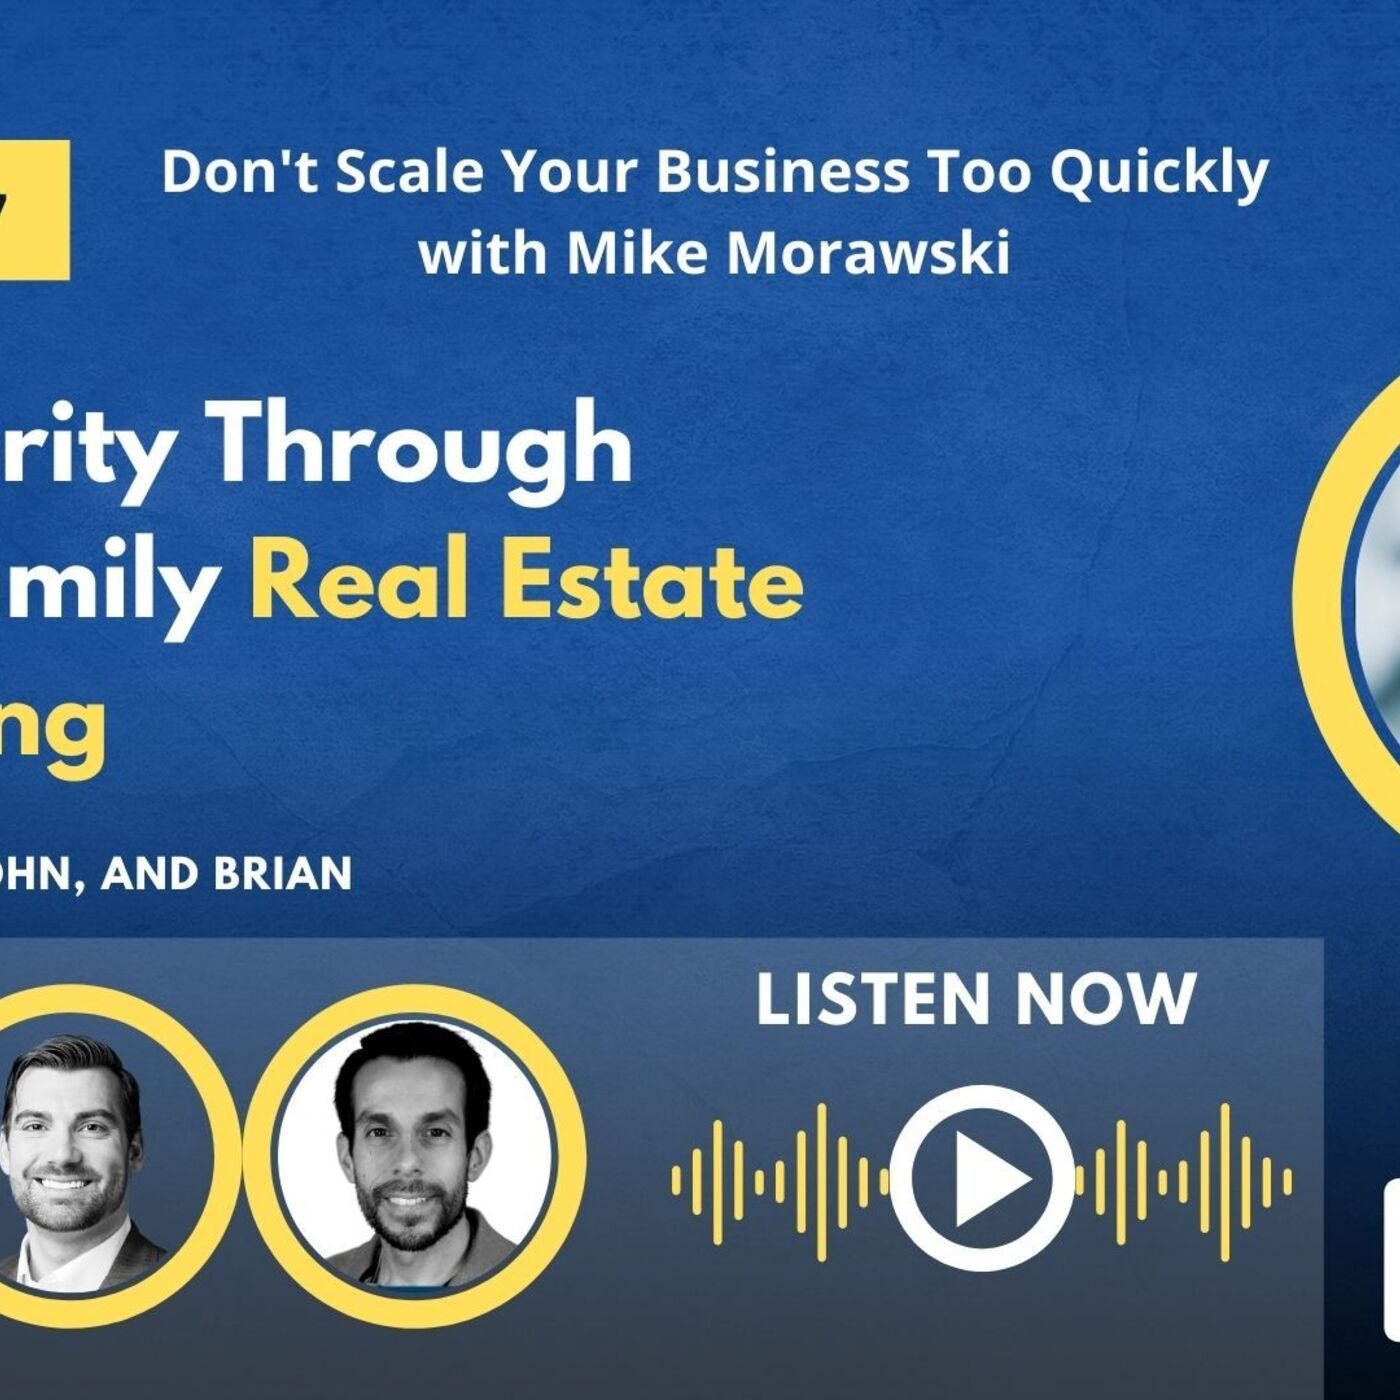 Don't Scale Your Business Too Quickly with Mike Morawski